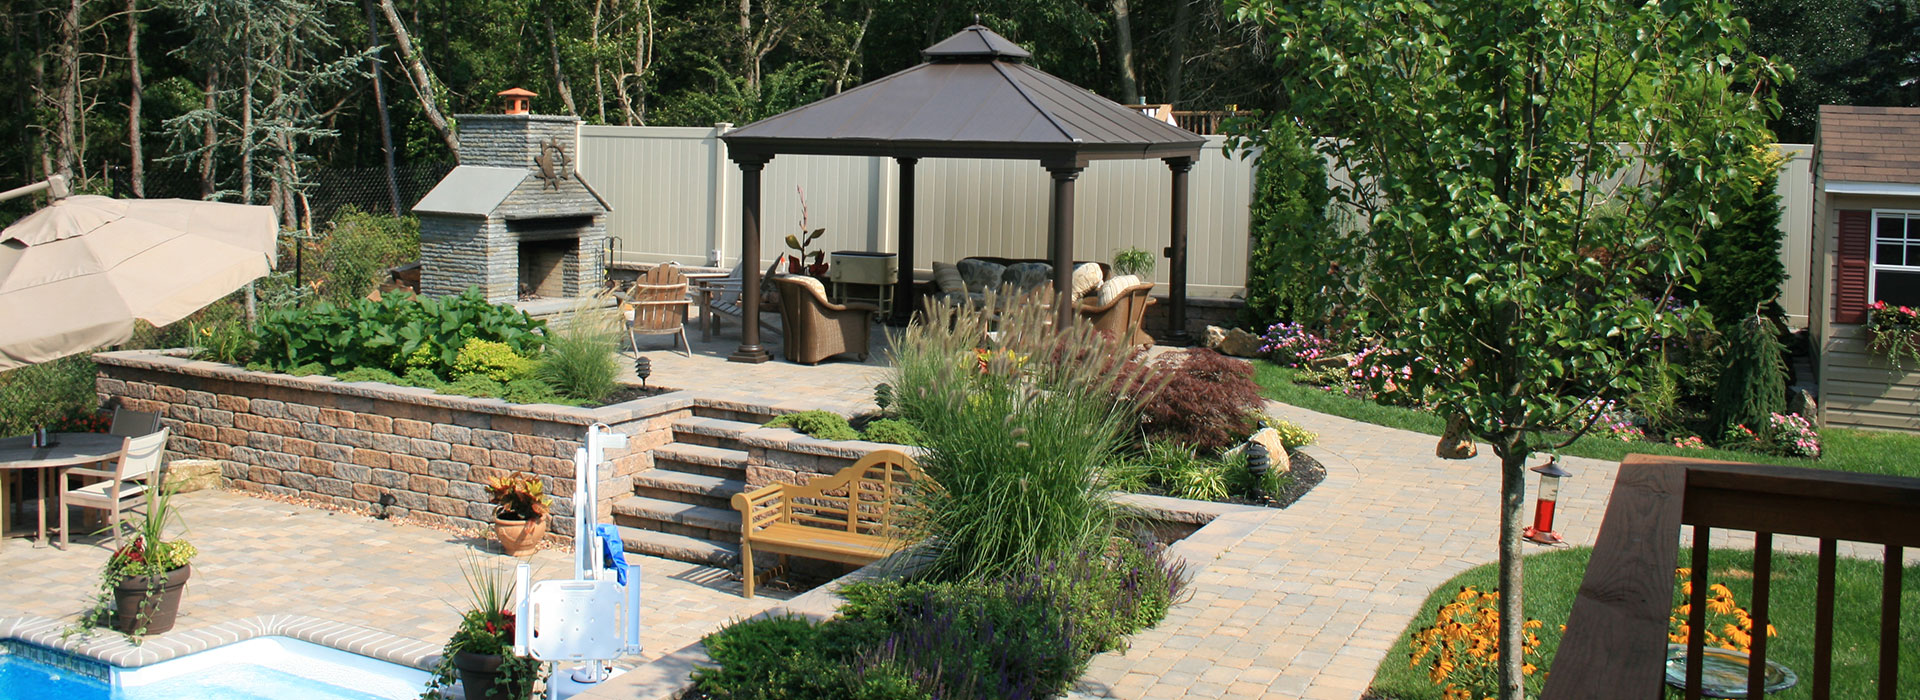 Long Island Landscape Designs Long Island Landscape Architects Designers